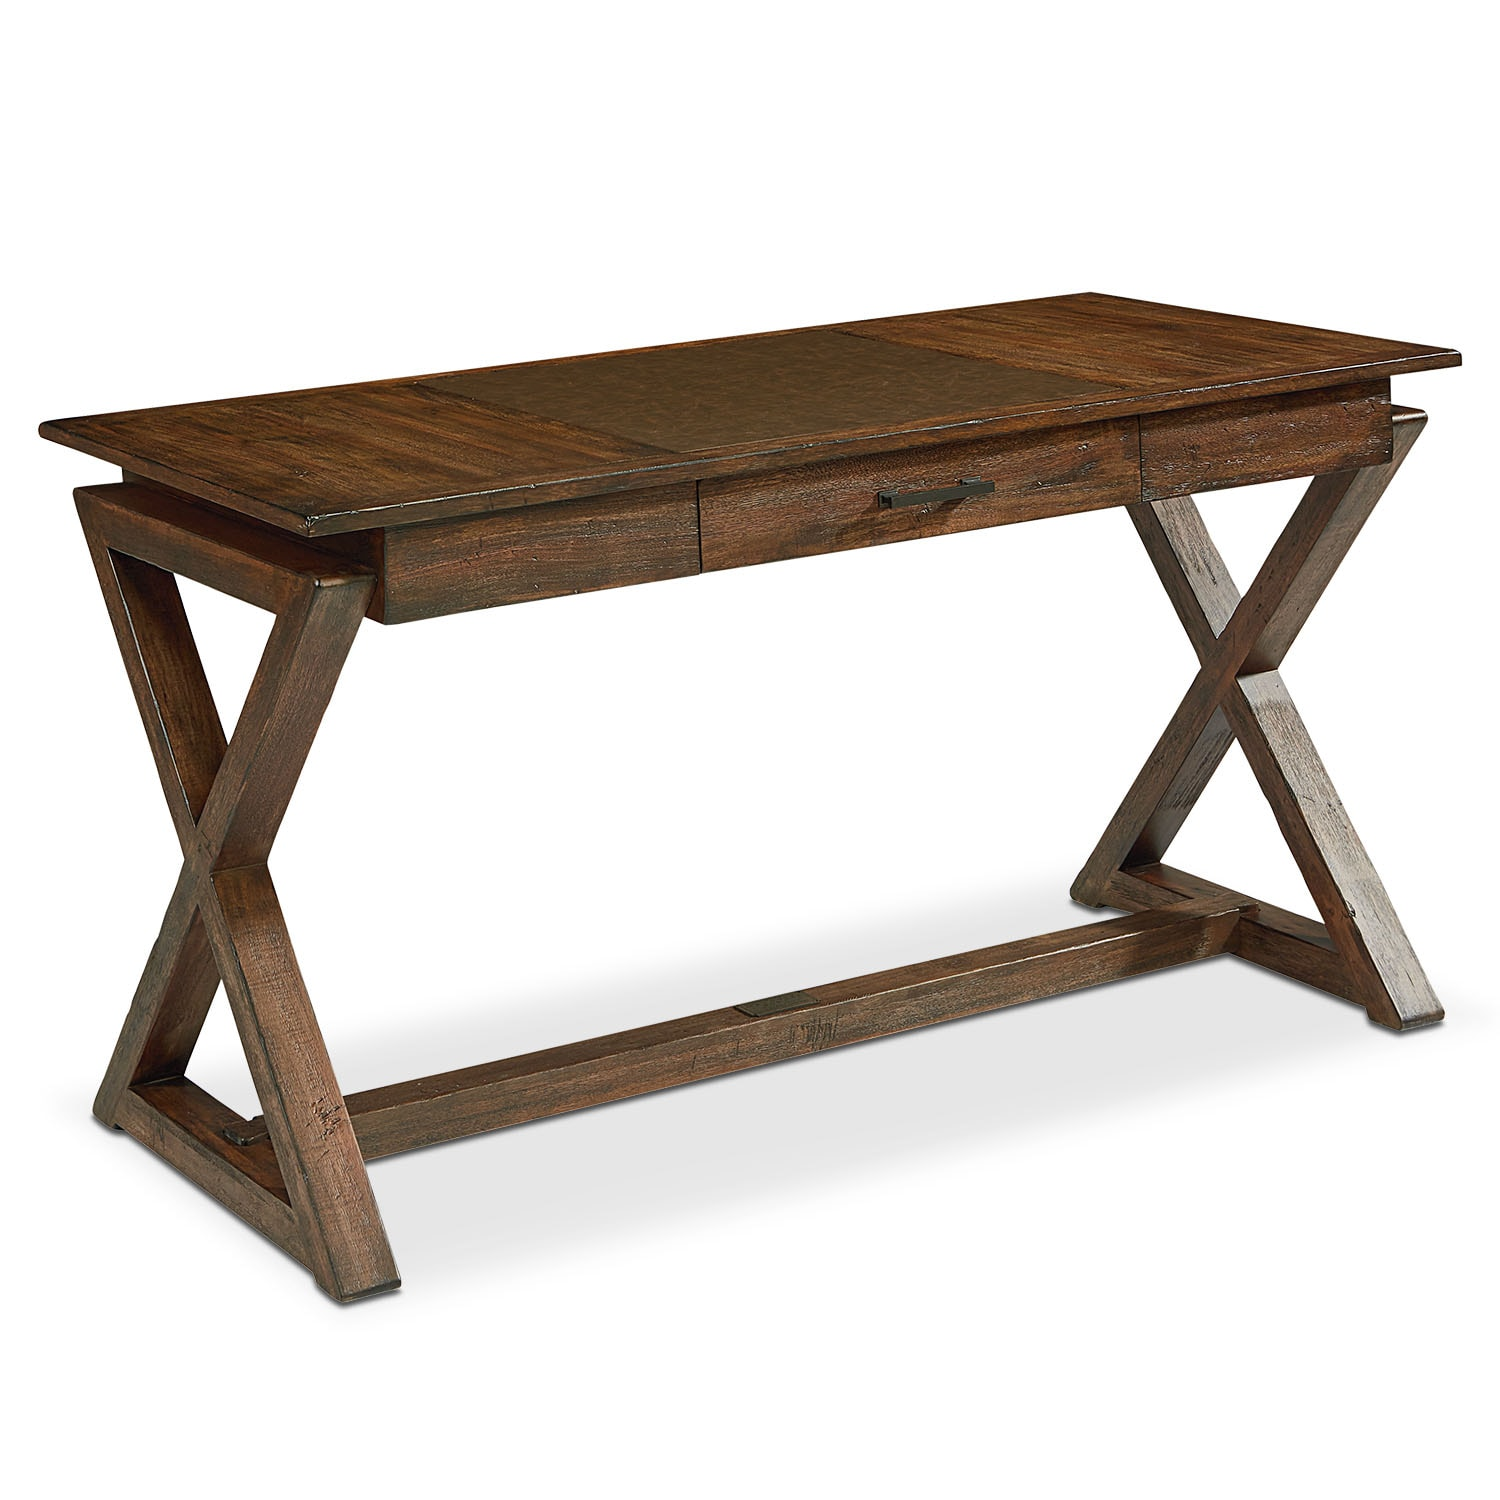 Home Office Furniture - Sawbuck Desk - Barn Door